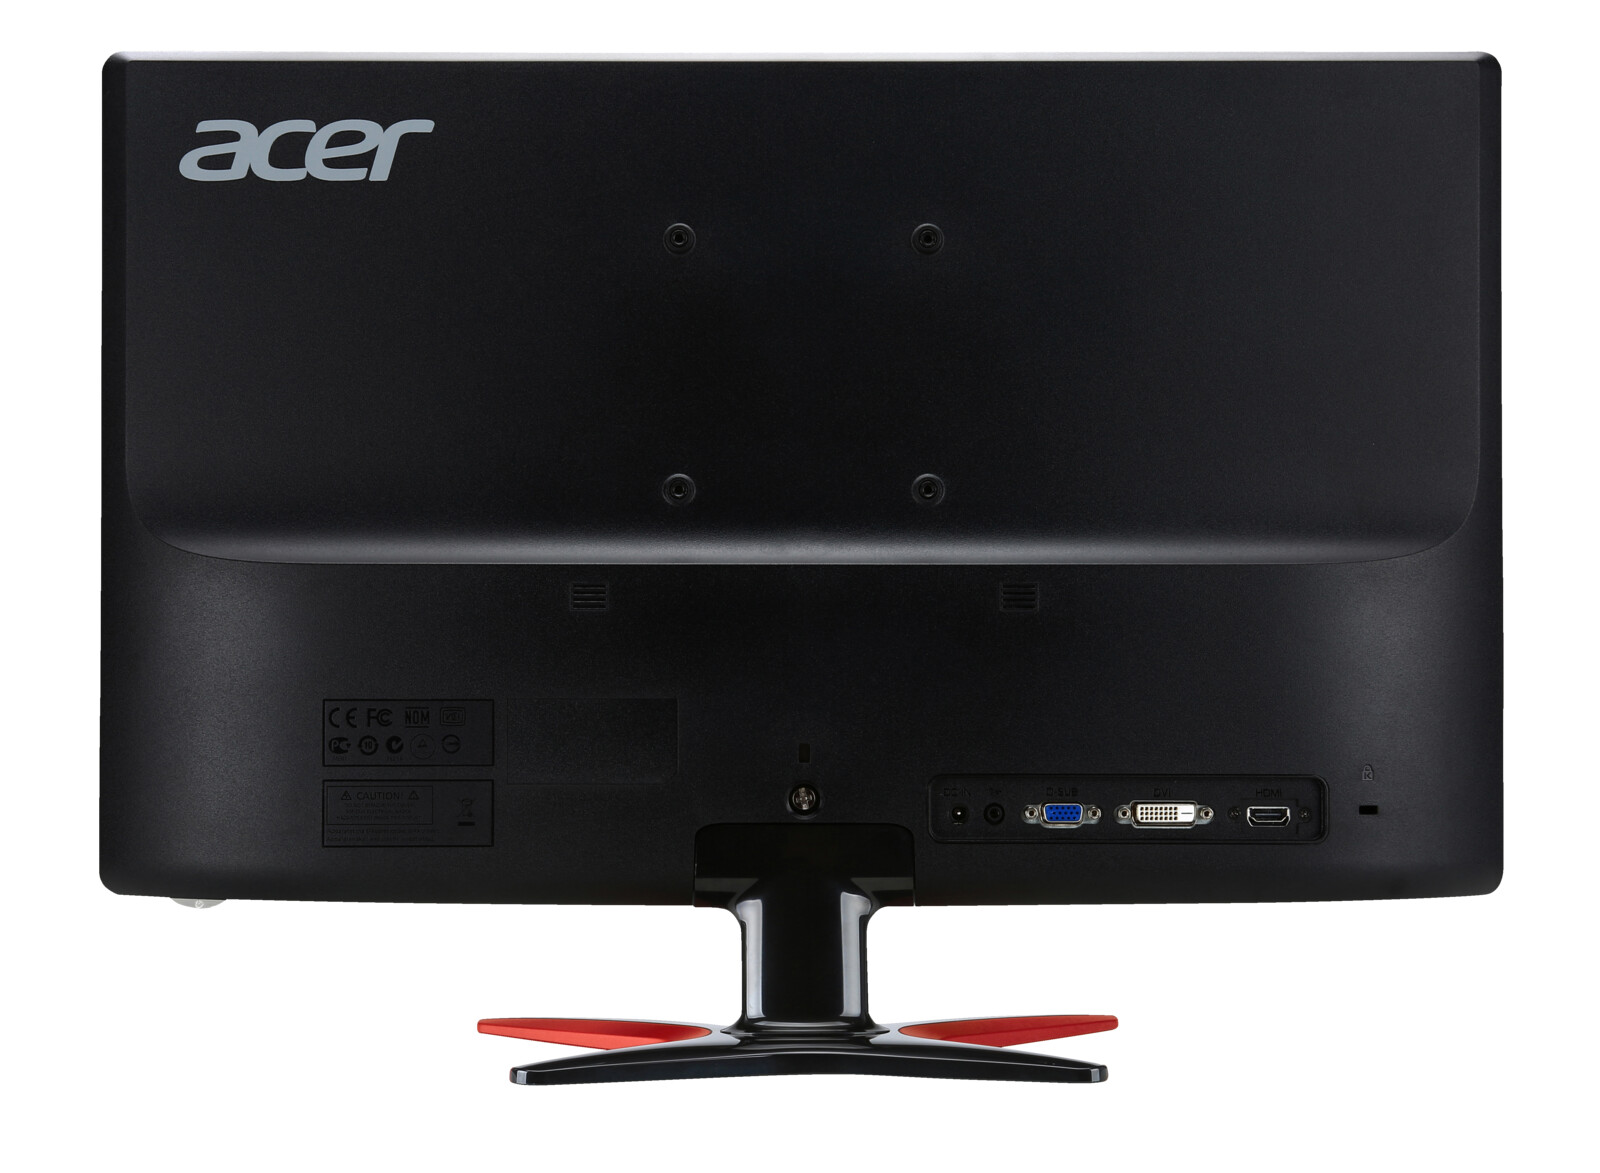 acer gf246 24 zoll full hd monitor 1 ms reaktionszeit. Black Bedroom Furniture Sets. Home Design Ideas